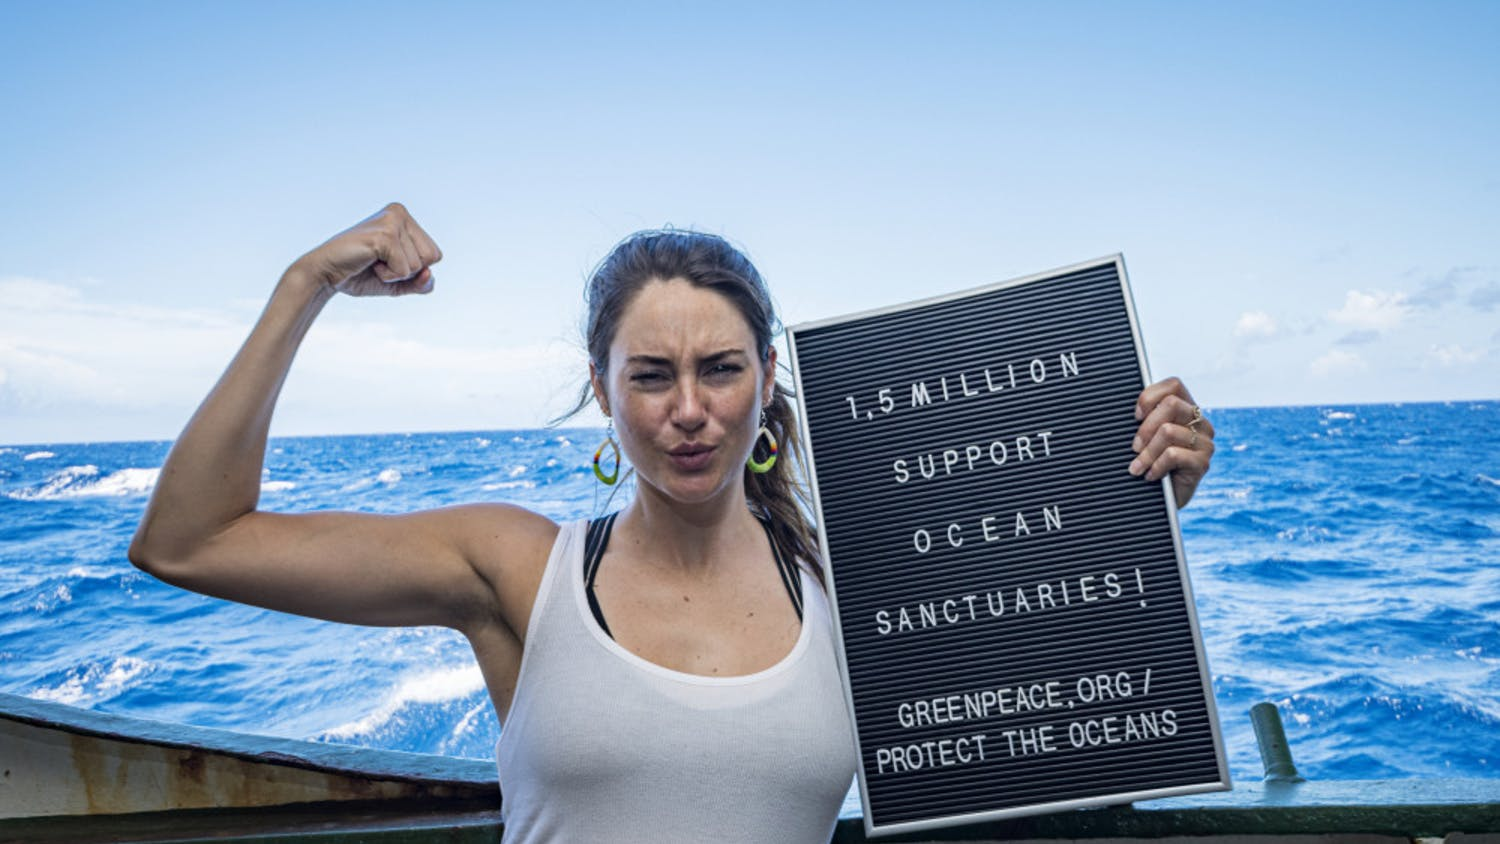 Shailene Woodley joined UF researchers Nerine Constant and Alexandra Gulick on a Greenpeace expedition to the Sargasso Sea. Woodley wrote a TIME article detailing her experiences on the expedition and how she will continue advocating for protecting the oceans.© Shane Gross / Greenpeace